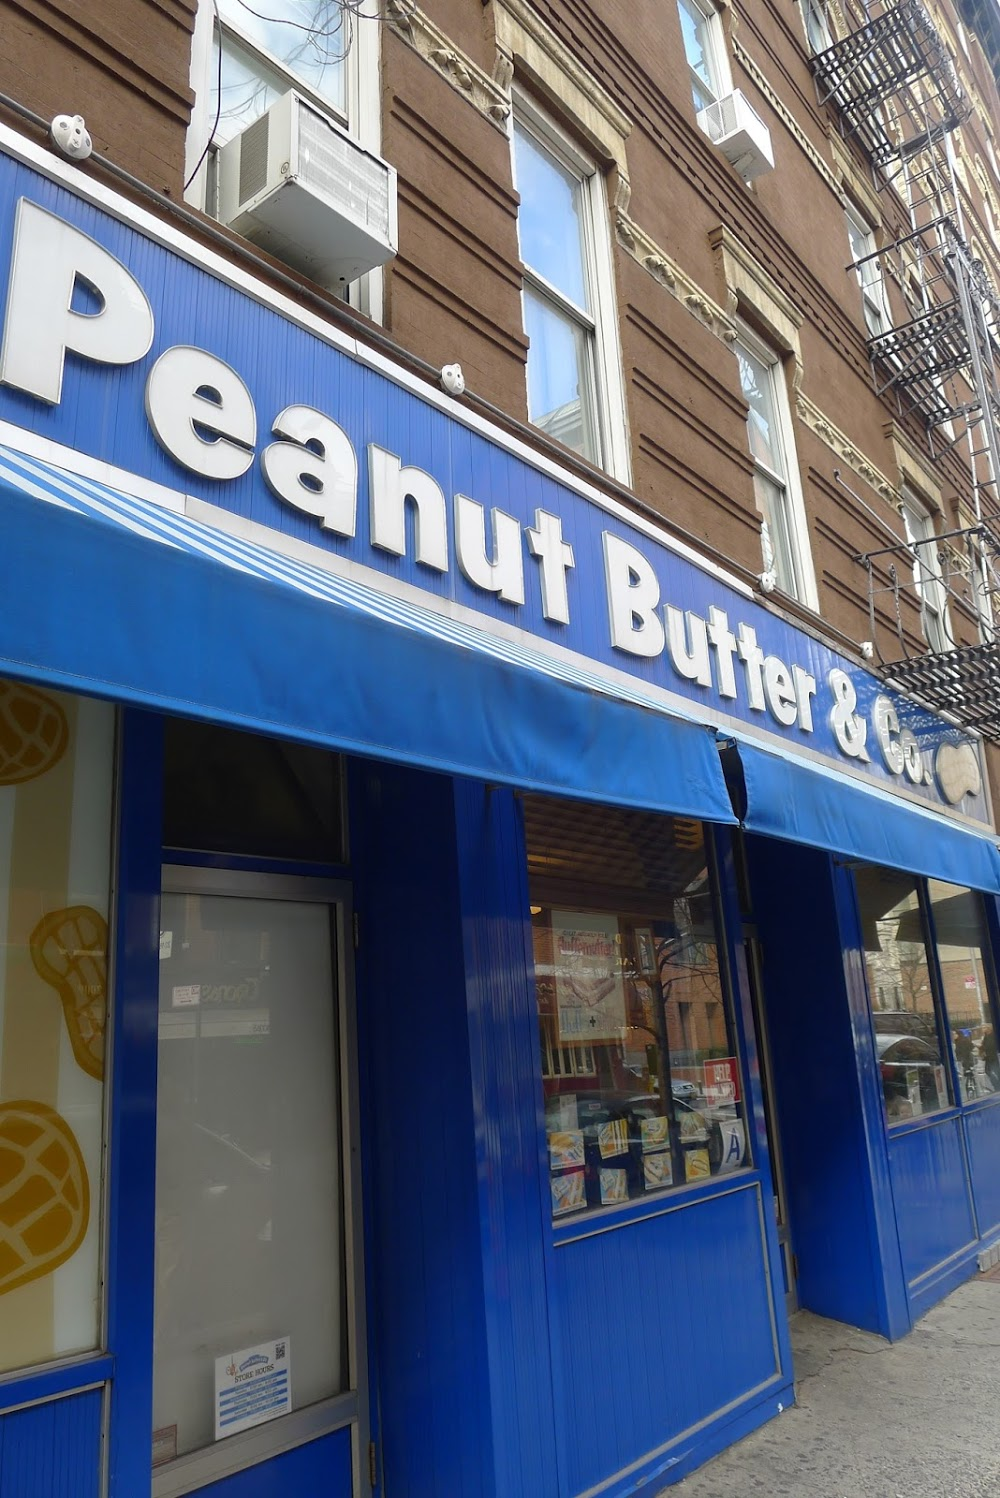 Reasons to eat out in Greenwich Village - Peanut Butter & Co.